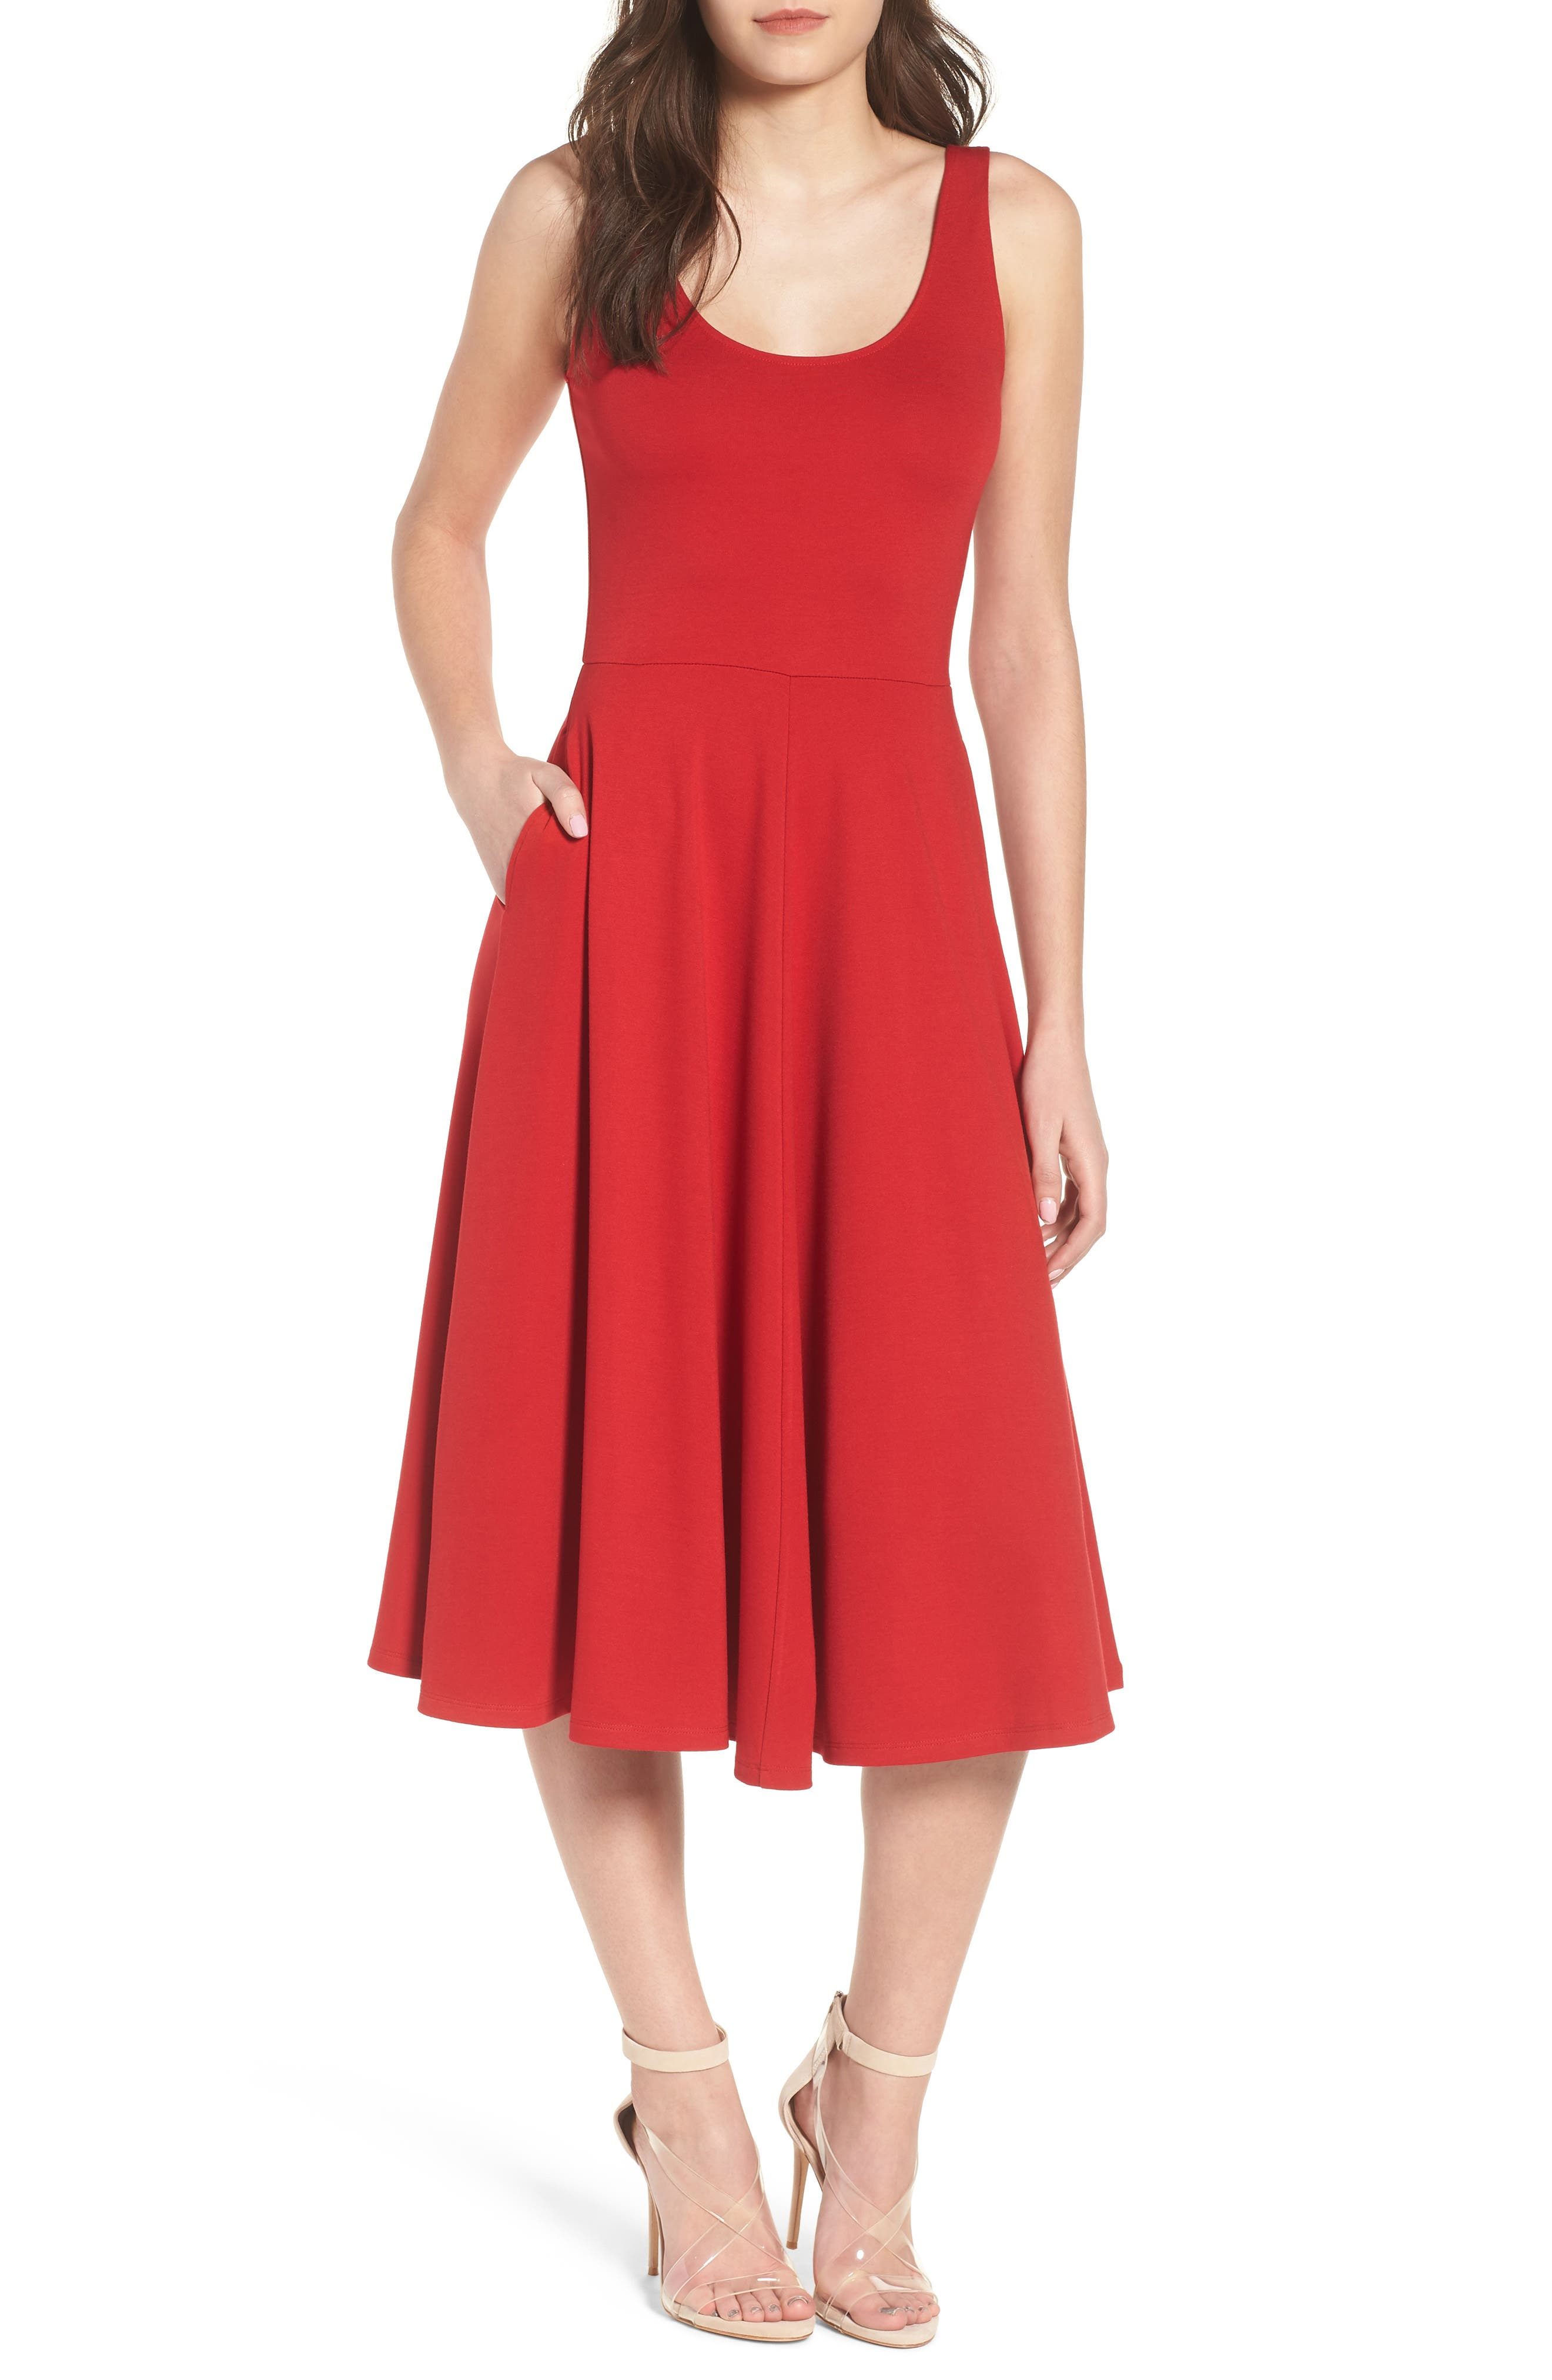 Stretch Knit Midi Dress,                         Main,                         color, Red Couture